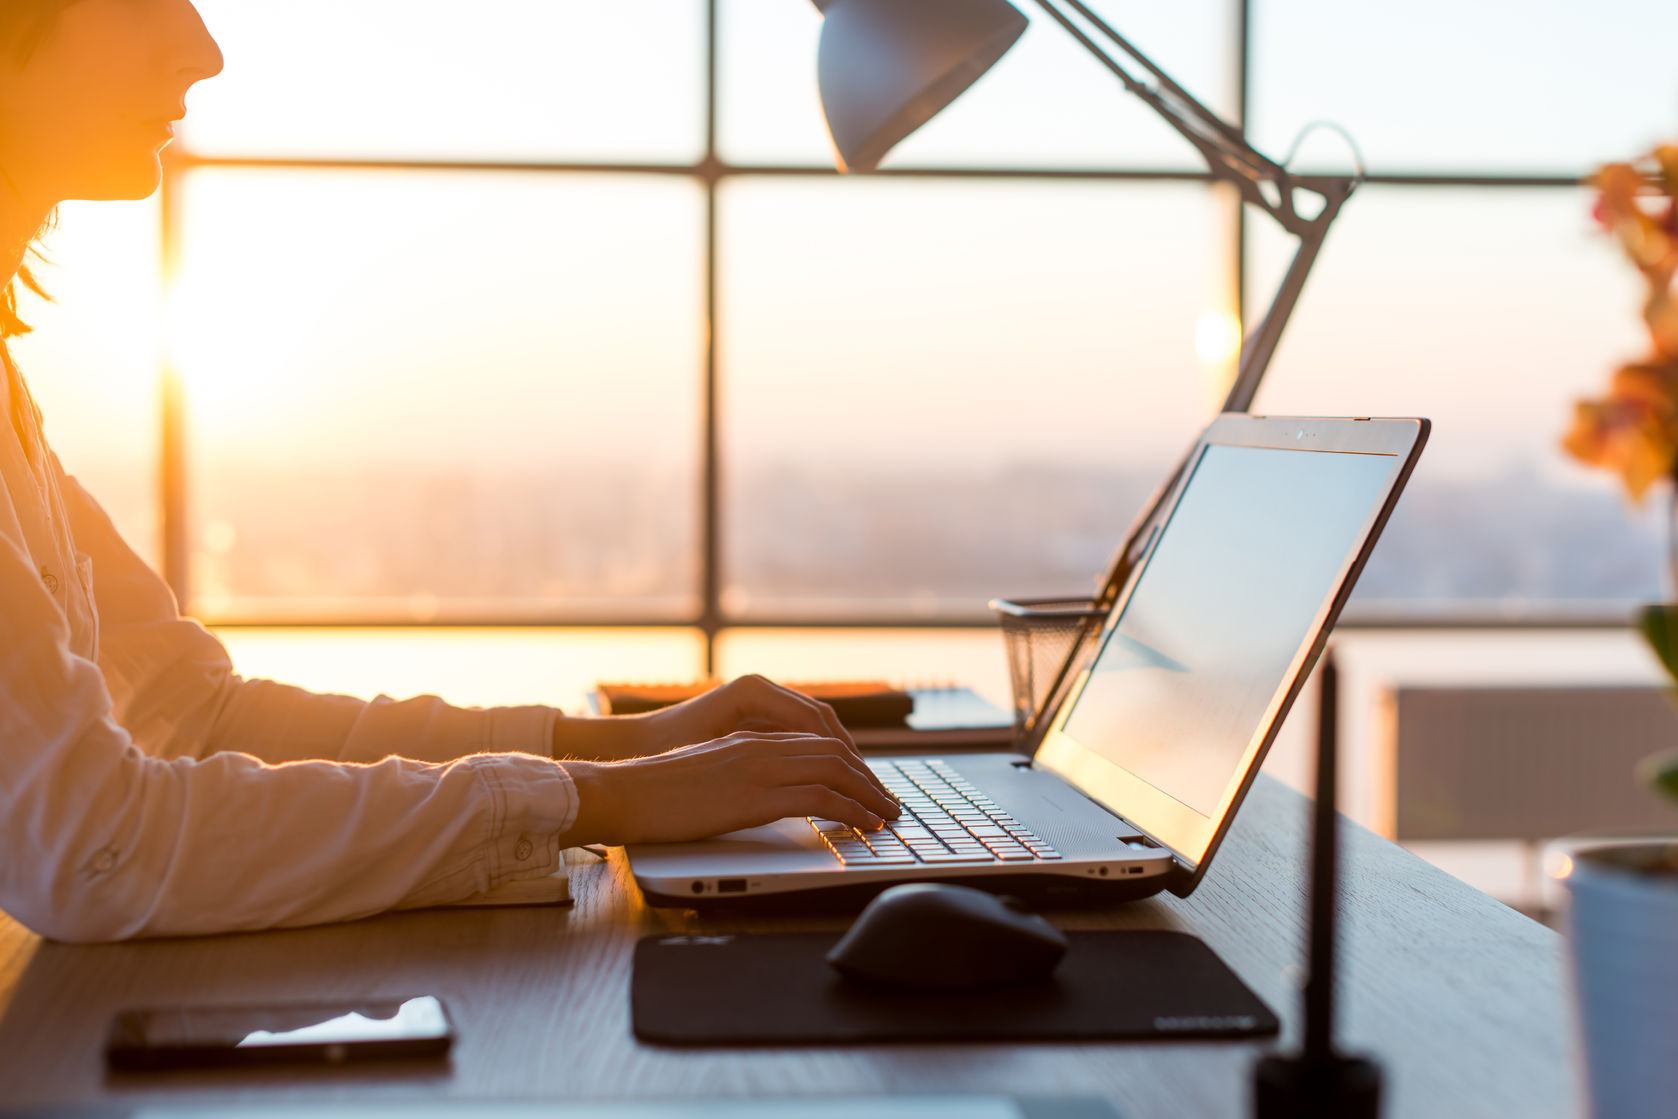 a brief history of teleworking a practice of working at home or a remote location